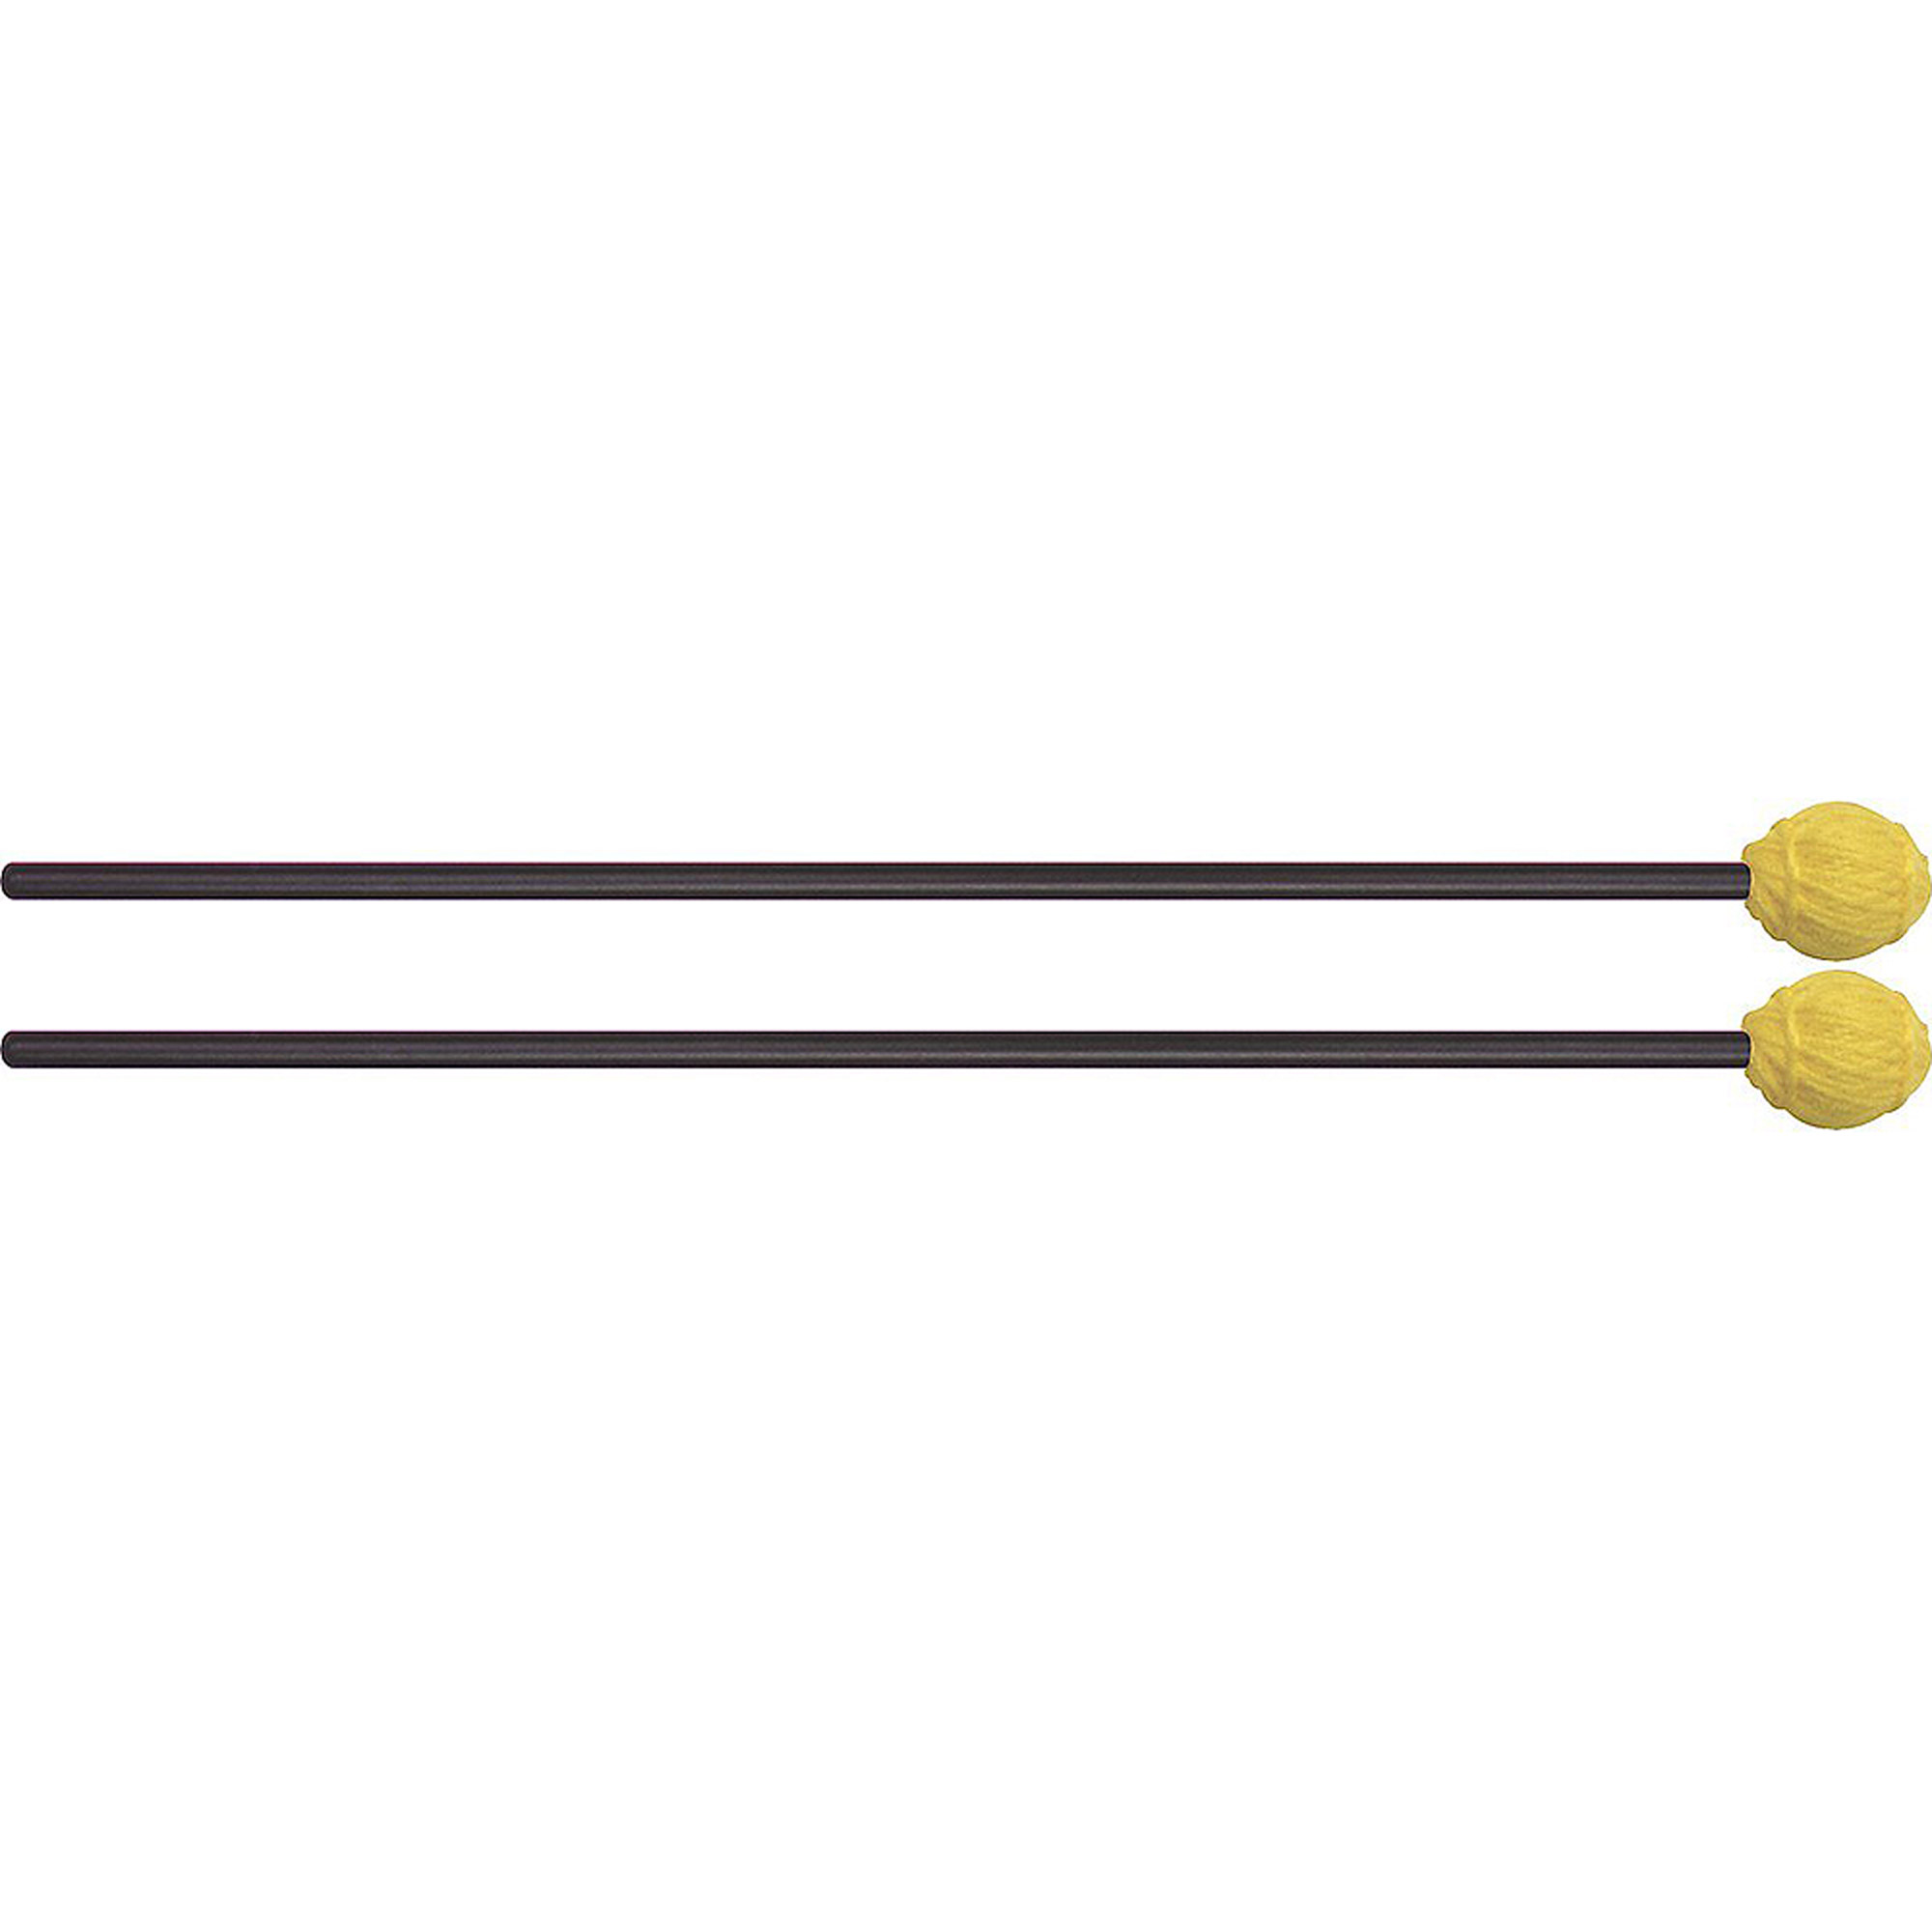 Mike Balter 11BB Ensemble Series Hard Yellow Marimba Mallets w  Black Birch Handles by Mike Balter